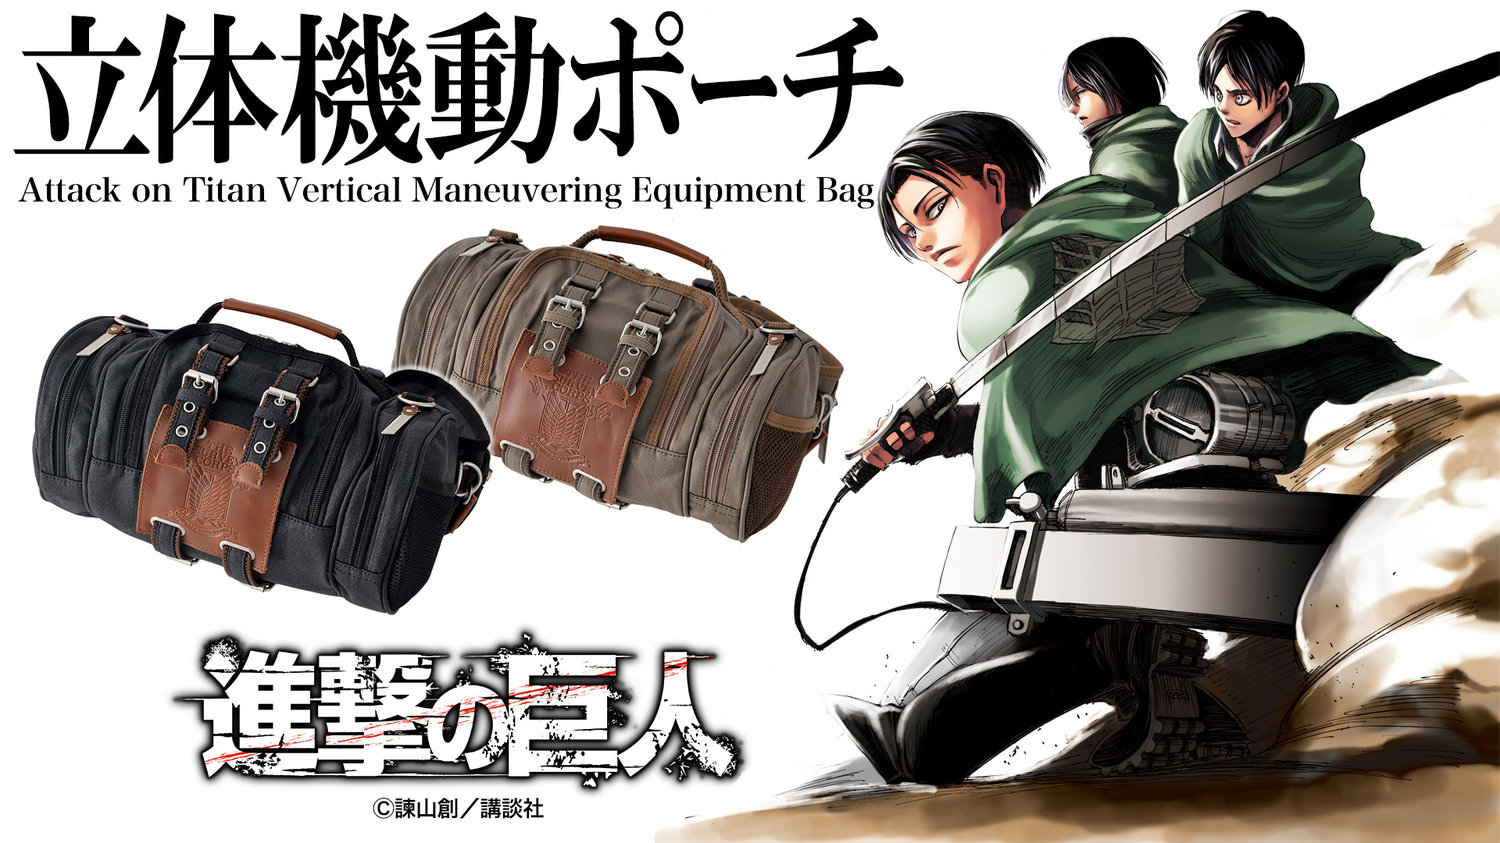 Attack on Titan Vertical Maneuvering Equipment 4-Way Bag